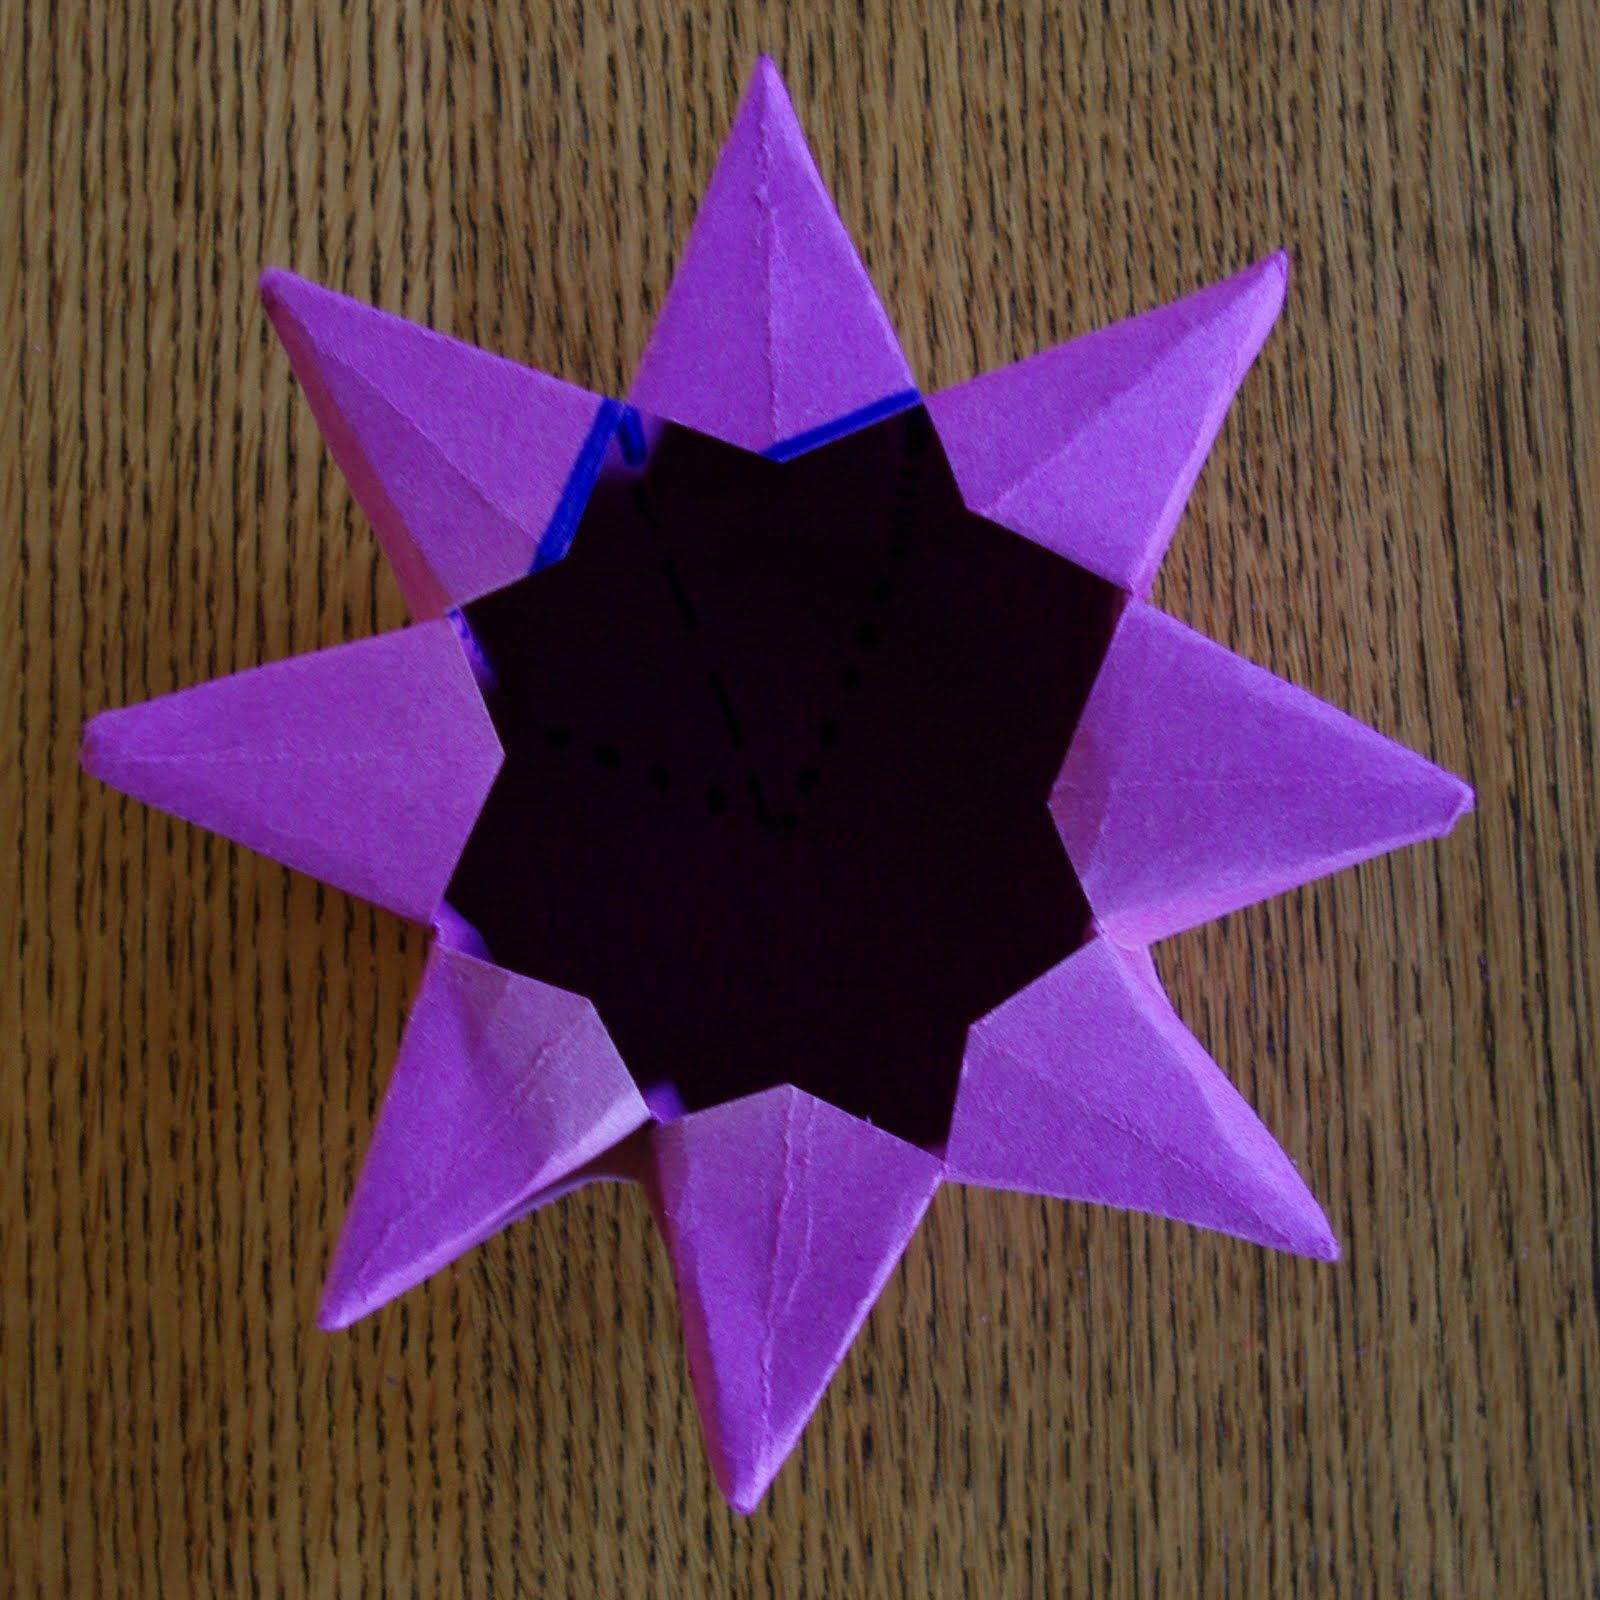 Passengers On A Little Spaceship Paper Star Lantern Tutorial